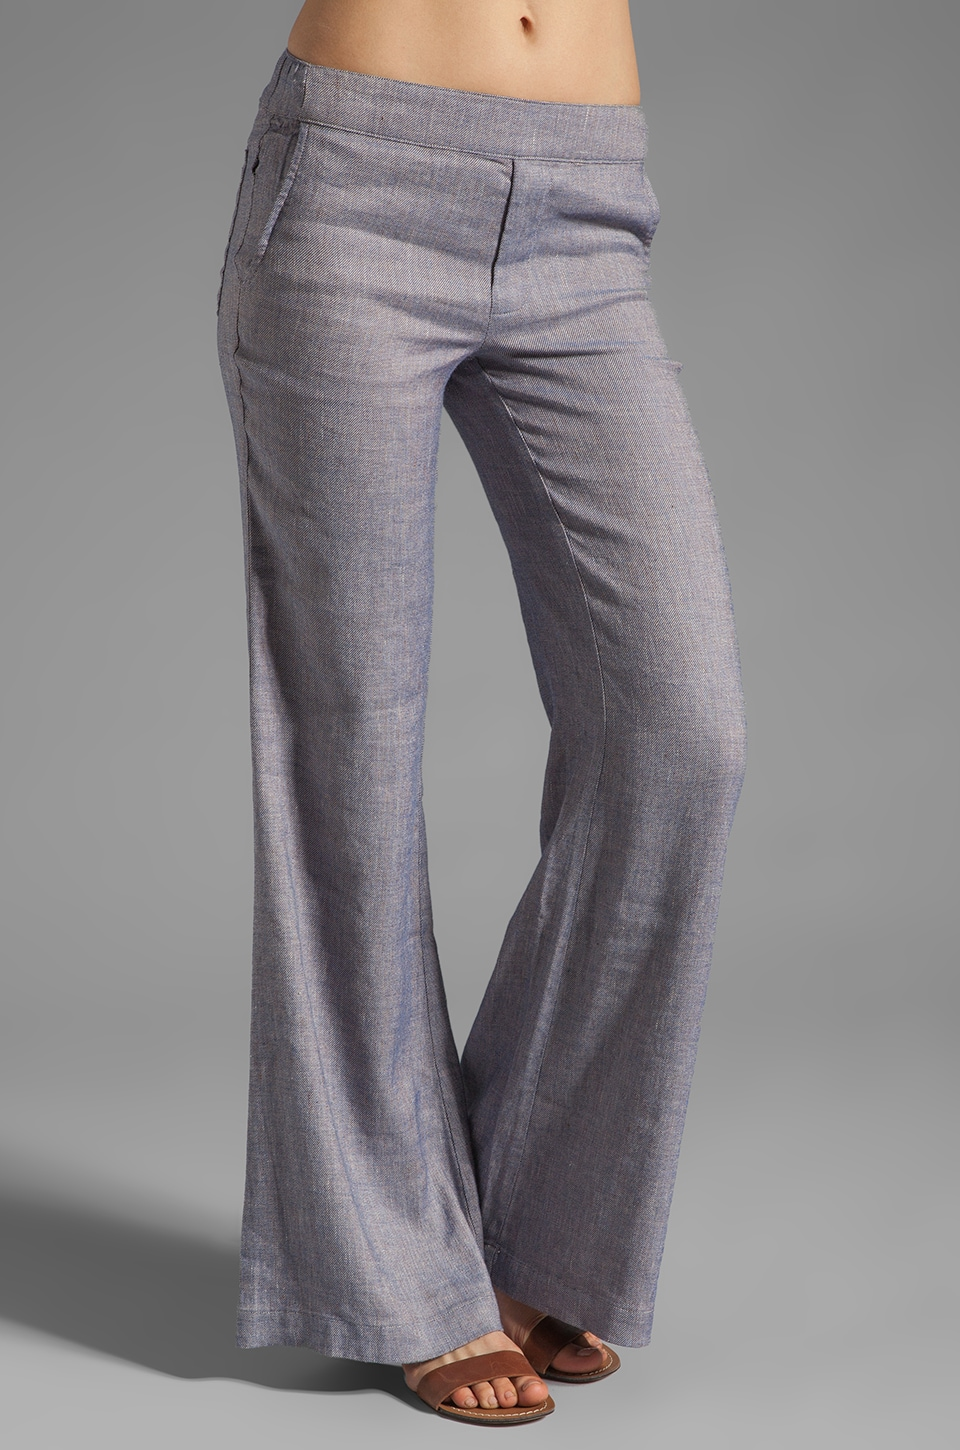 Ella Moss Coquette Pant in Chambray